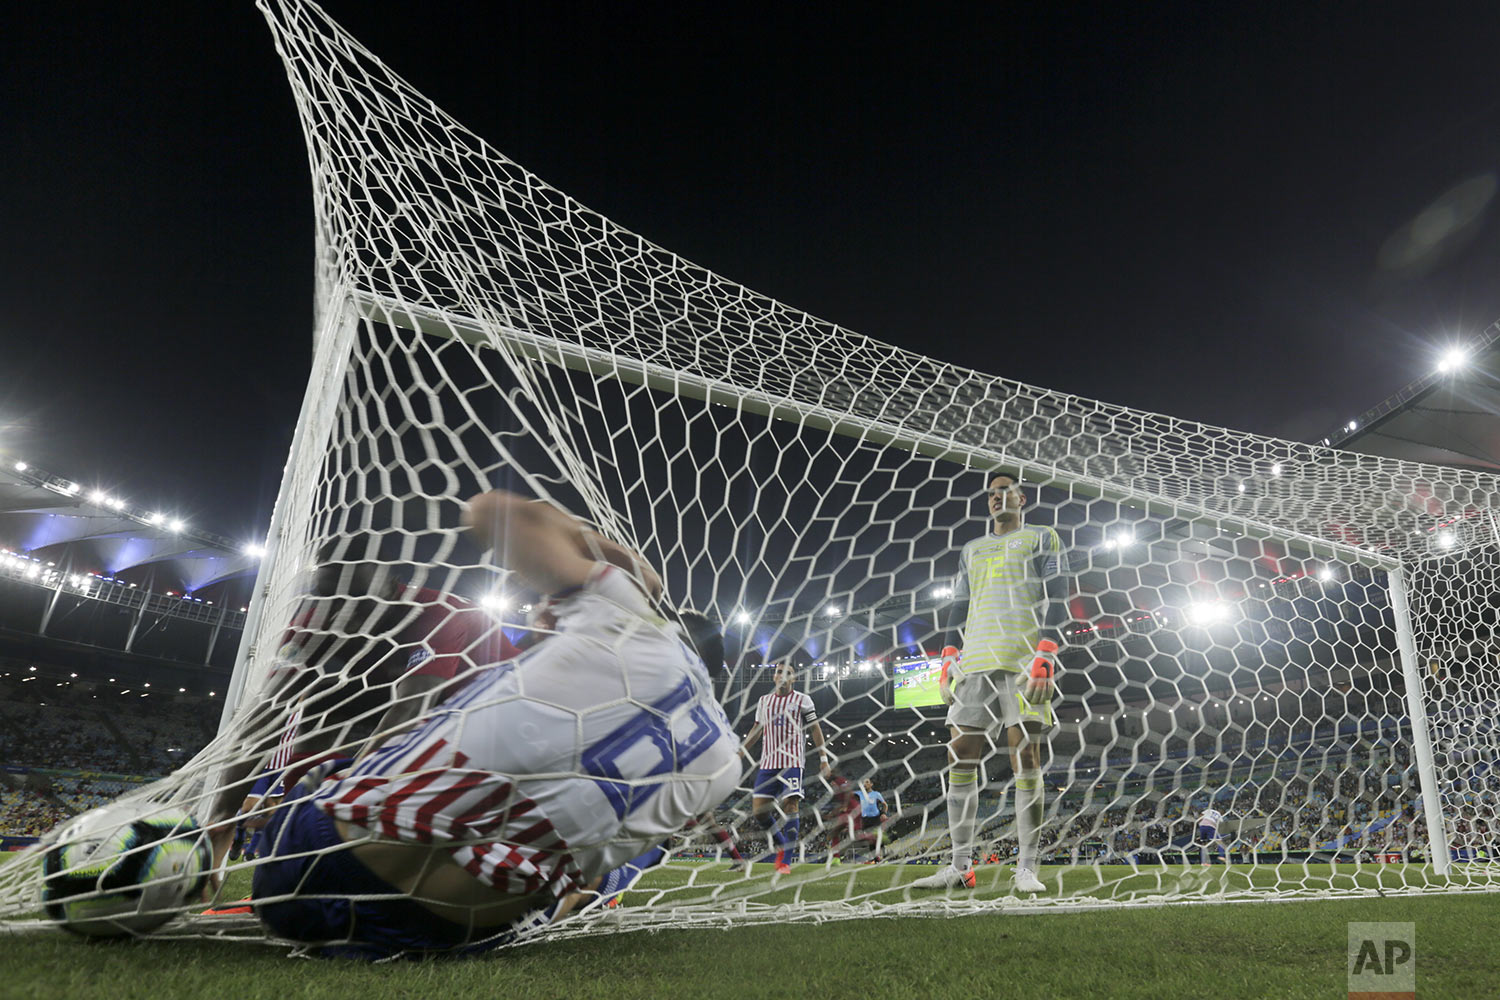 Paraguay's Rodrigo Rojas falls inside his goal after Qatar's Boualem Khoukhi scored his side's second goal during their Copa America Group B soccer match at the Maracana stadium in Rio de Janeiro, Brazil, Sunday, June 16, 2019. (AP Photo/Silvia Izquierdo)